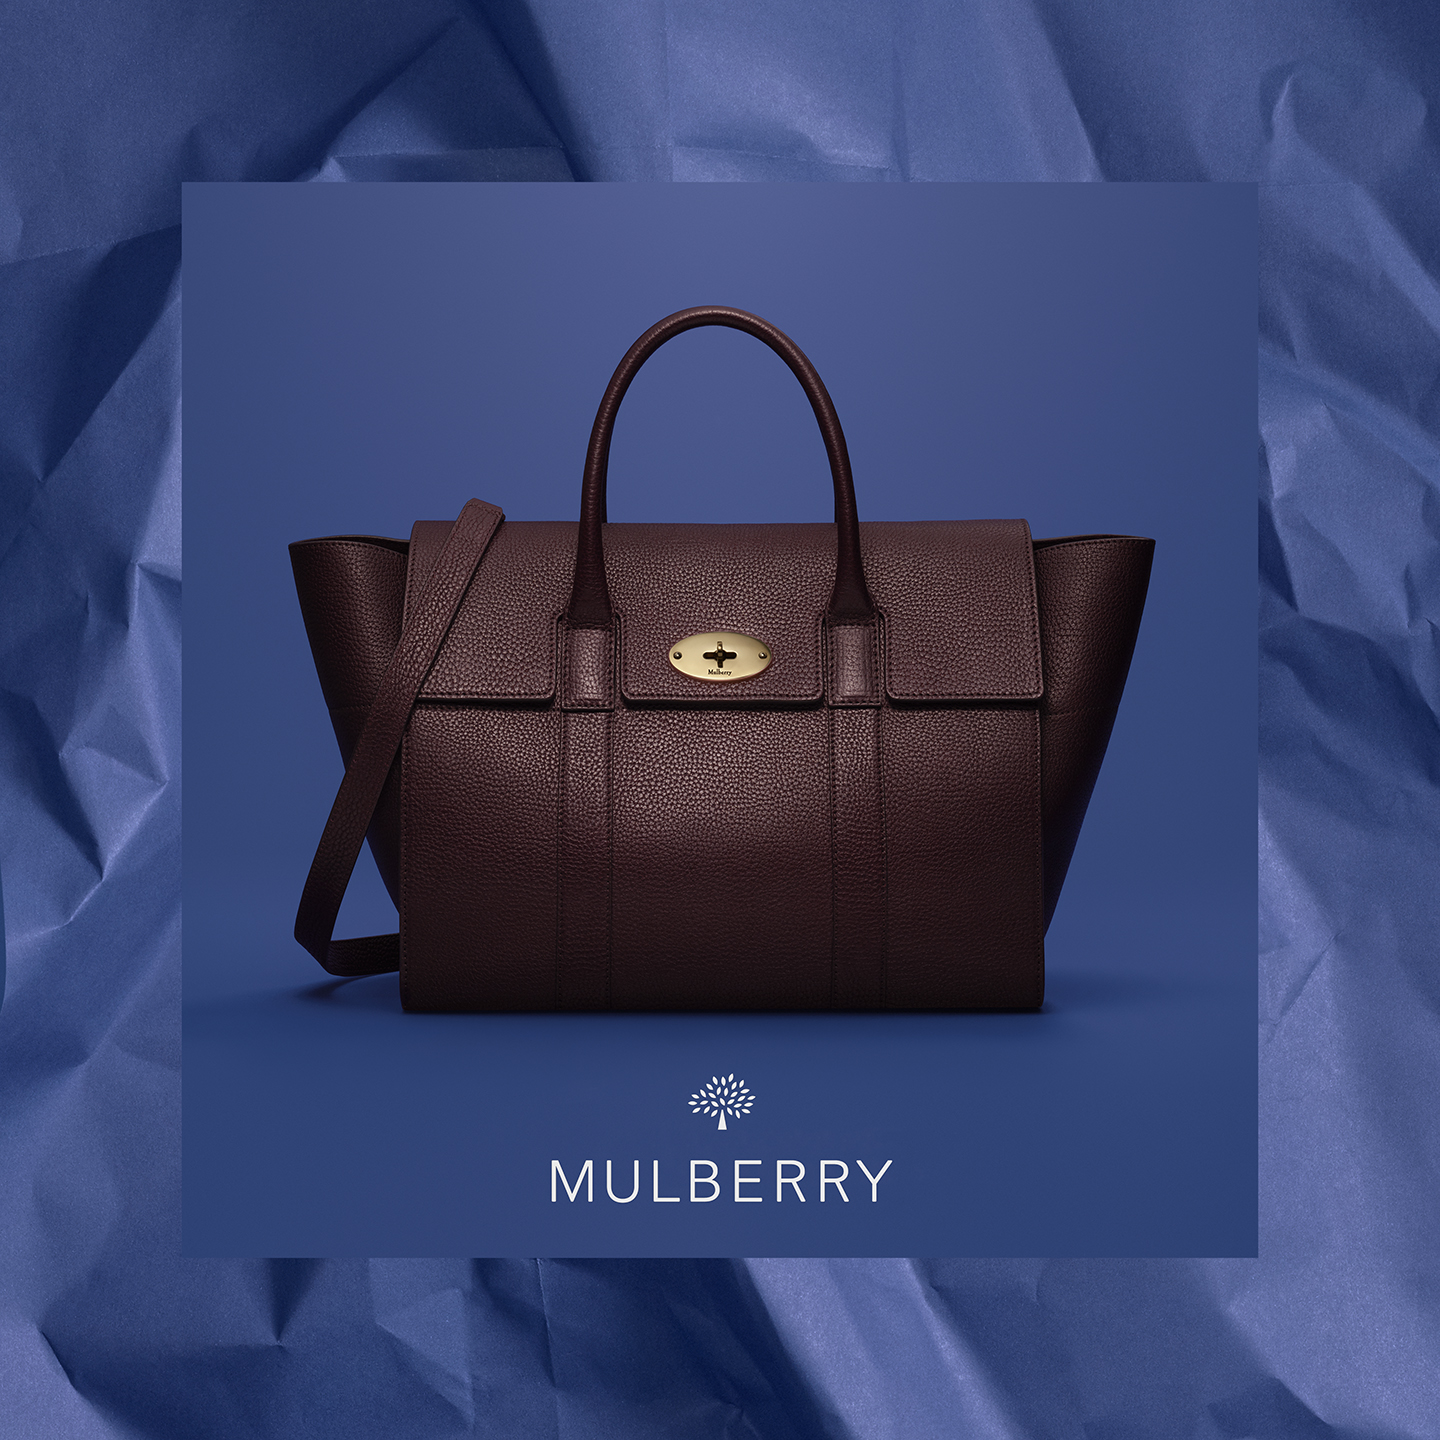 MULBERRY CHRISTMAS